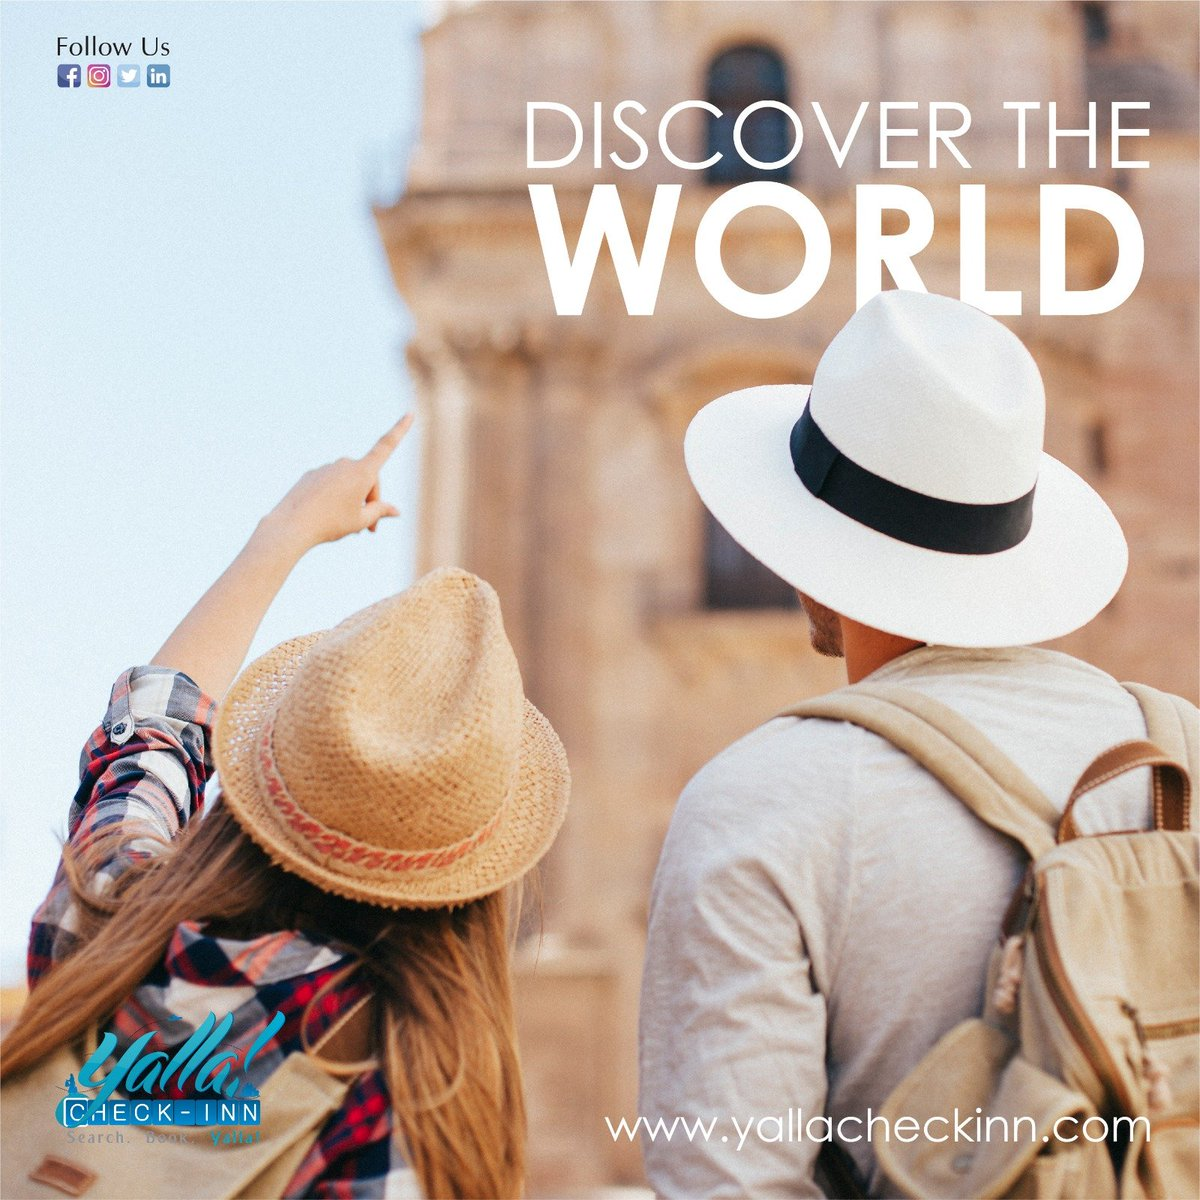 #Discover the #World with  #YallaCheckinn  #BOOK #HOTELS & #FLIGHTS Amazing #Rates & #Fares https://t.co/0V6XYVCEMM